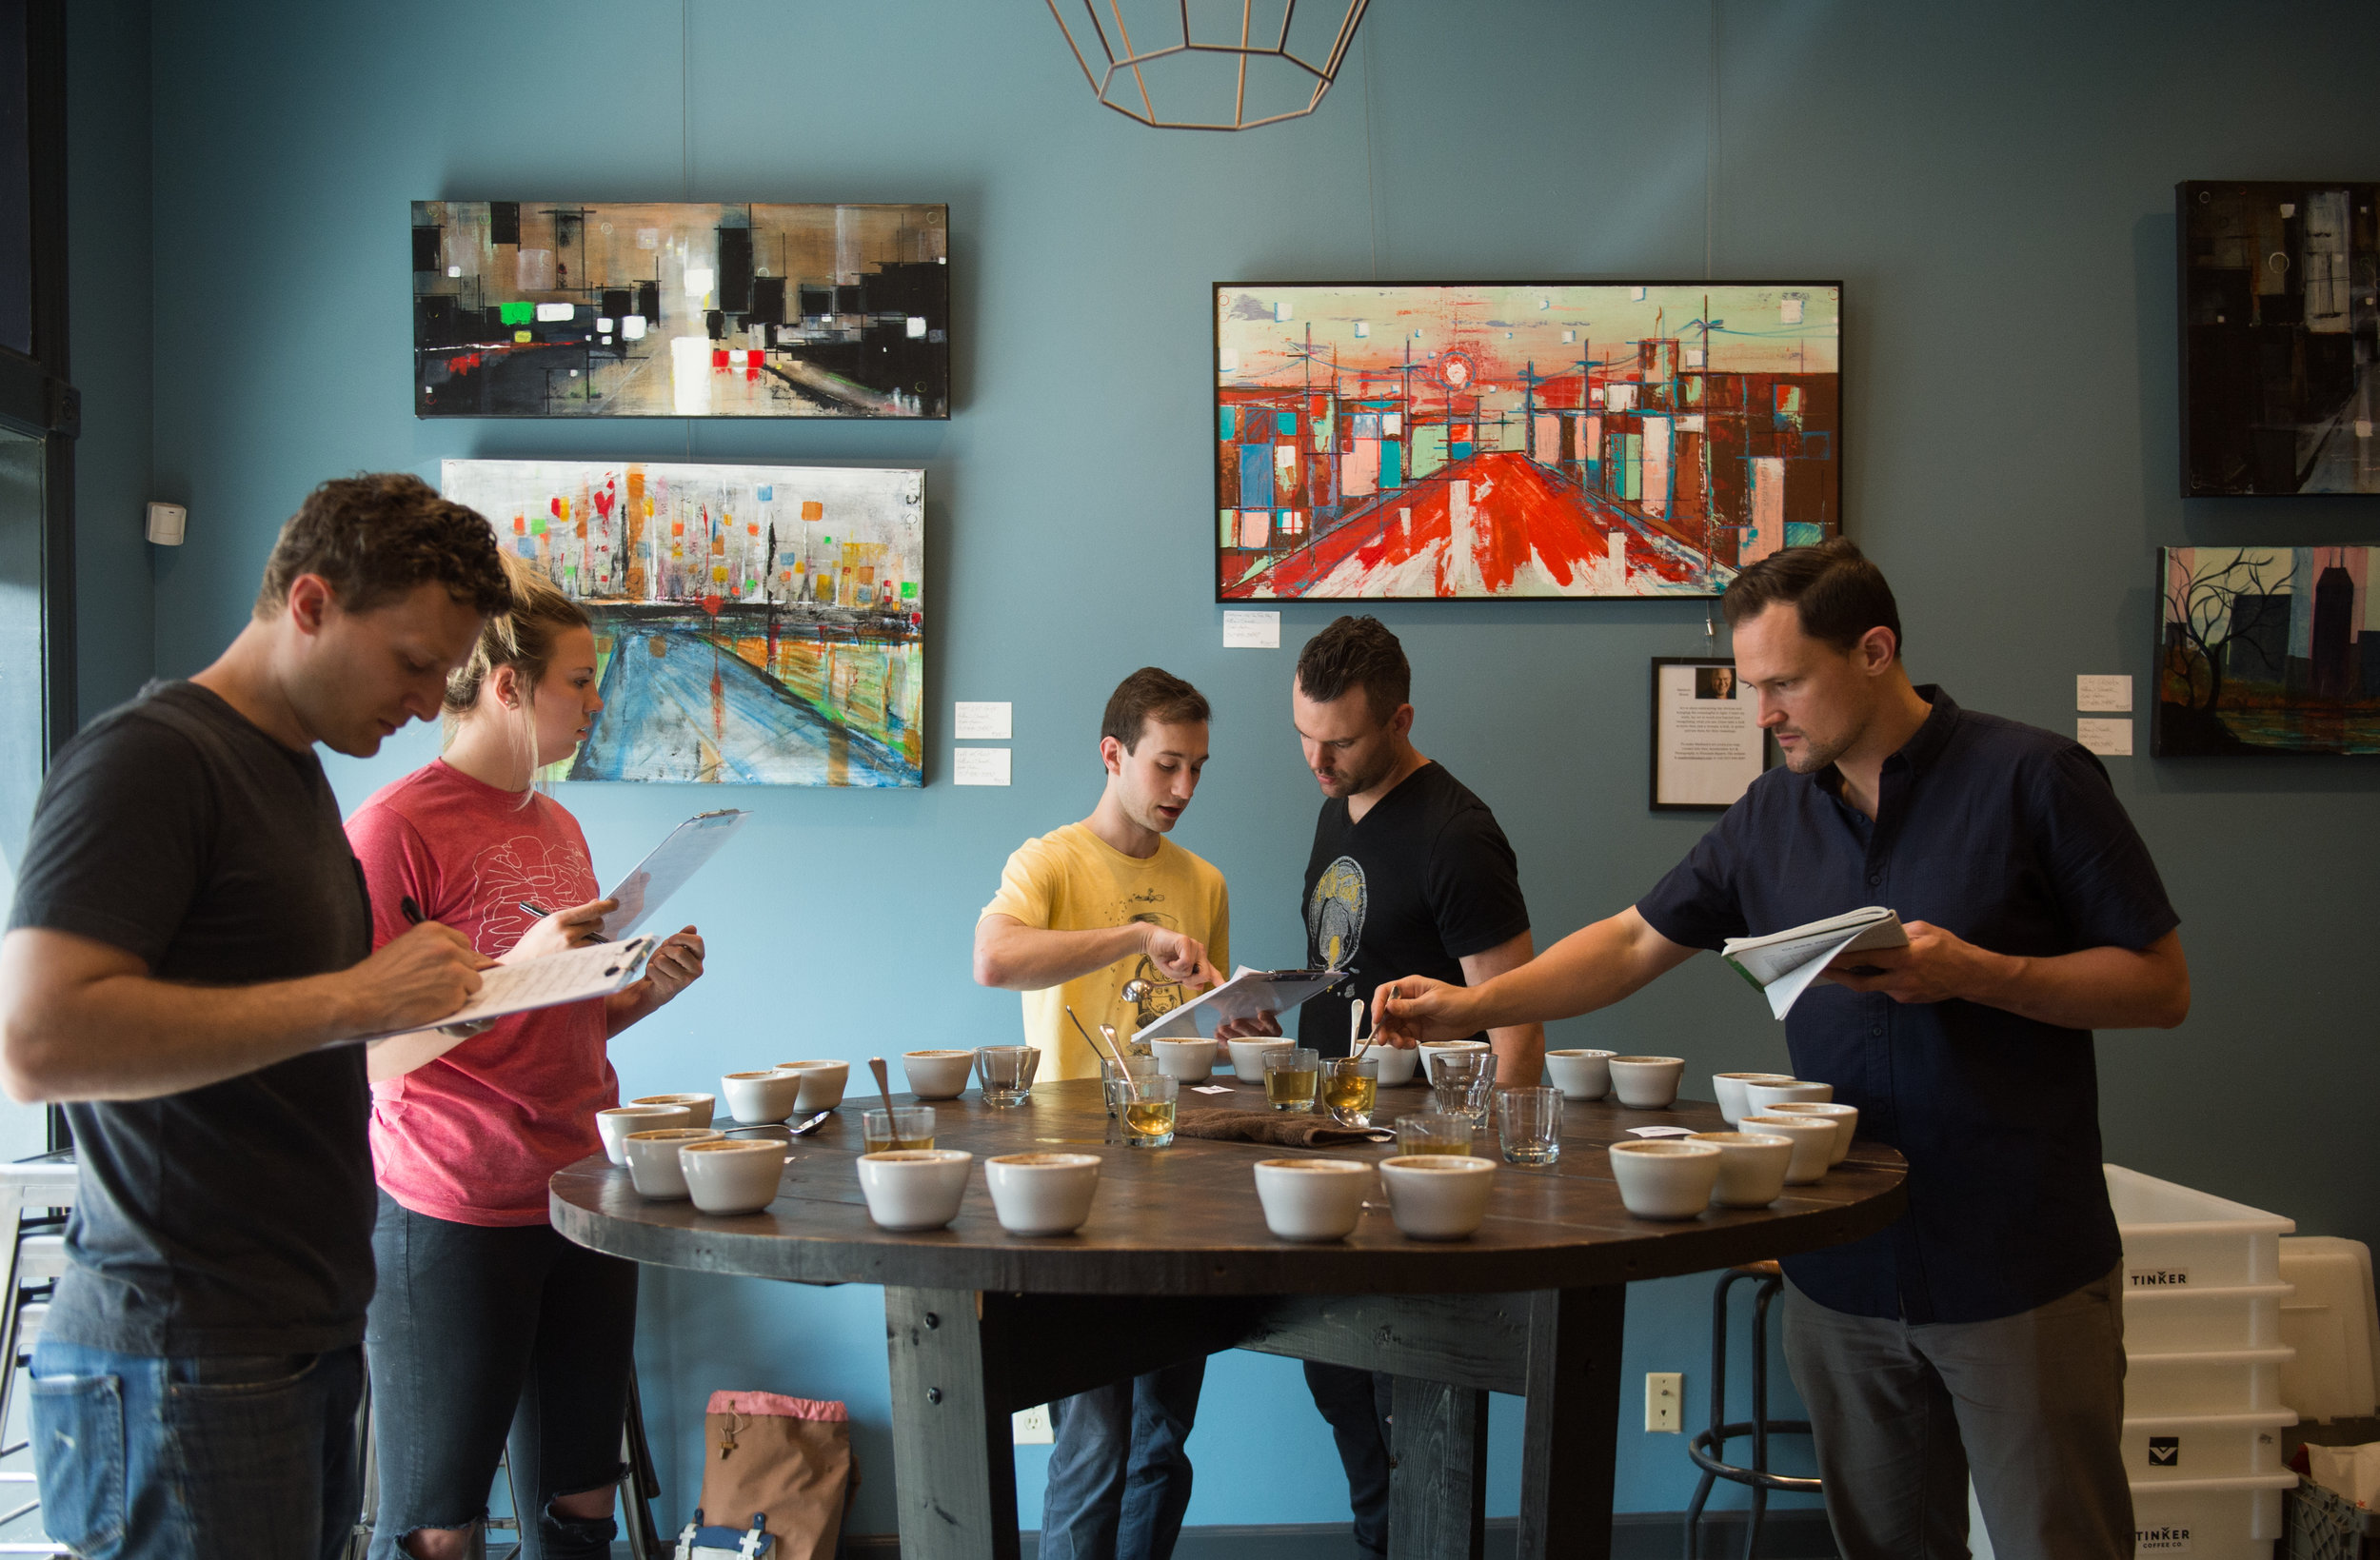 tinker crew cupping